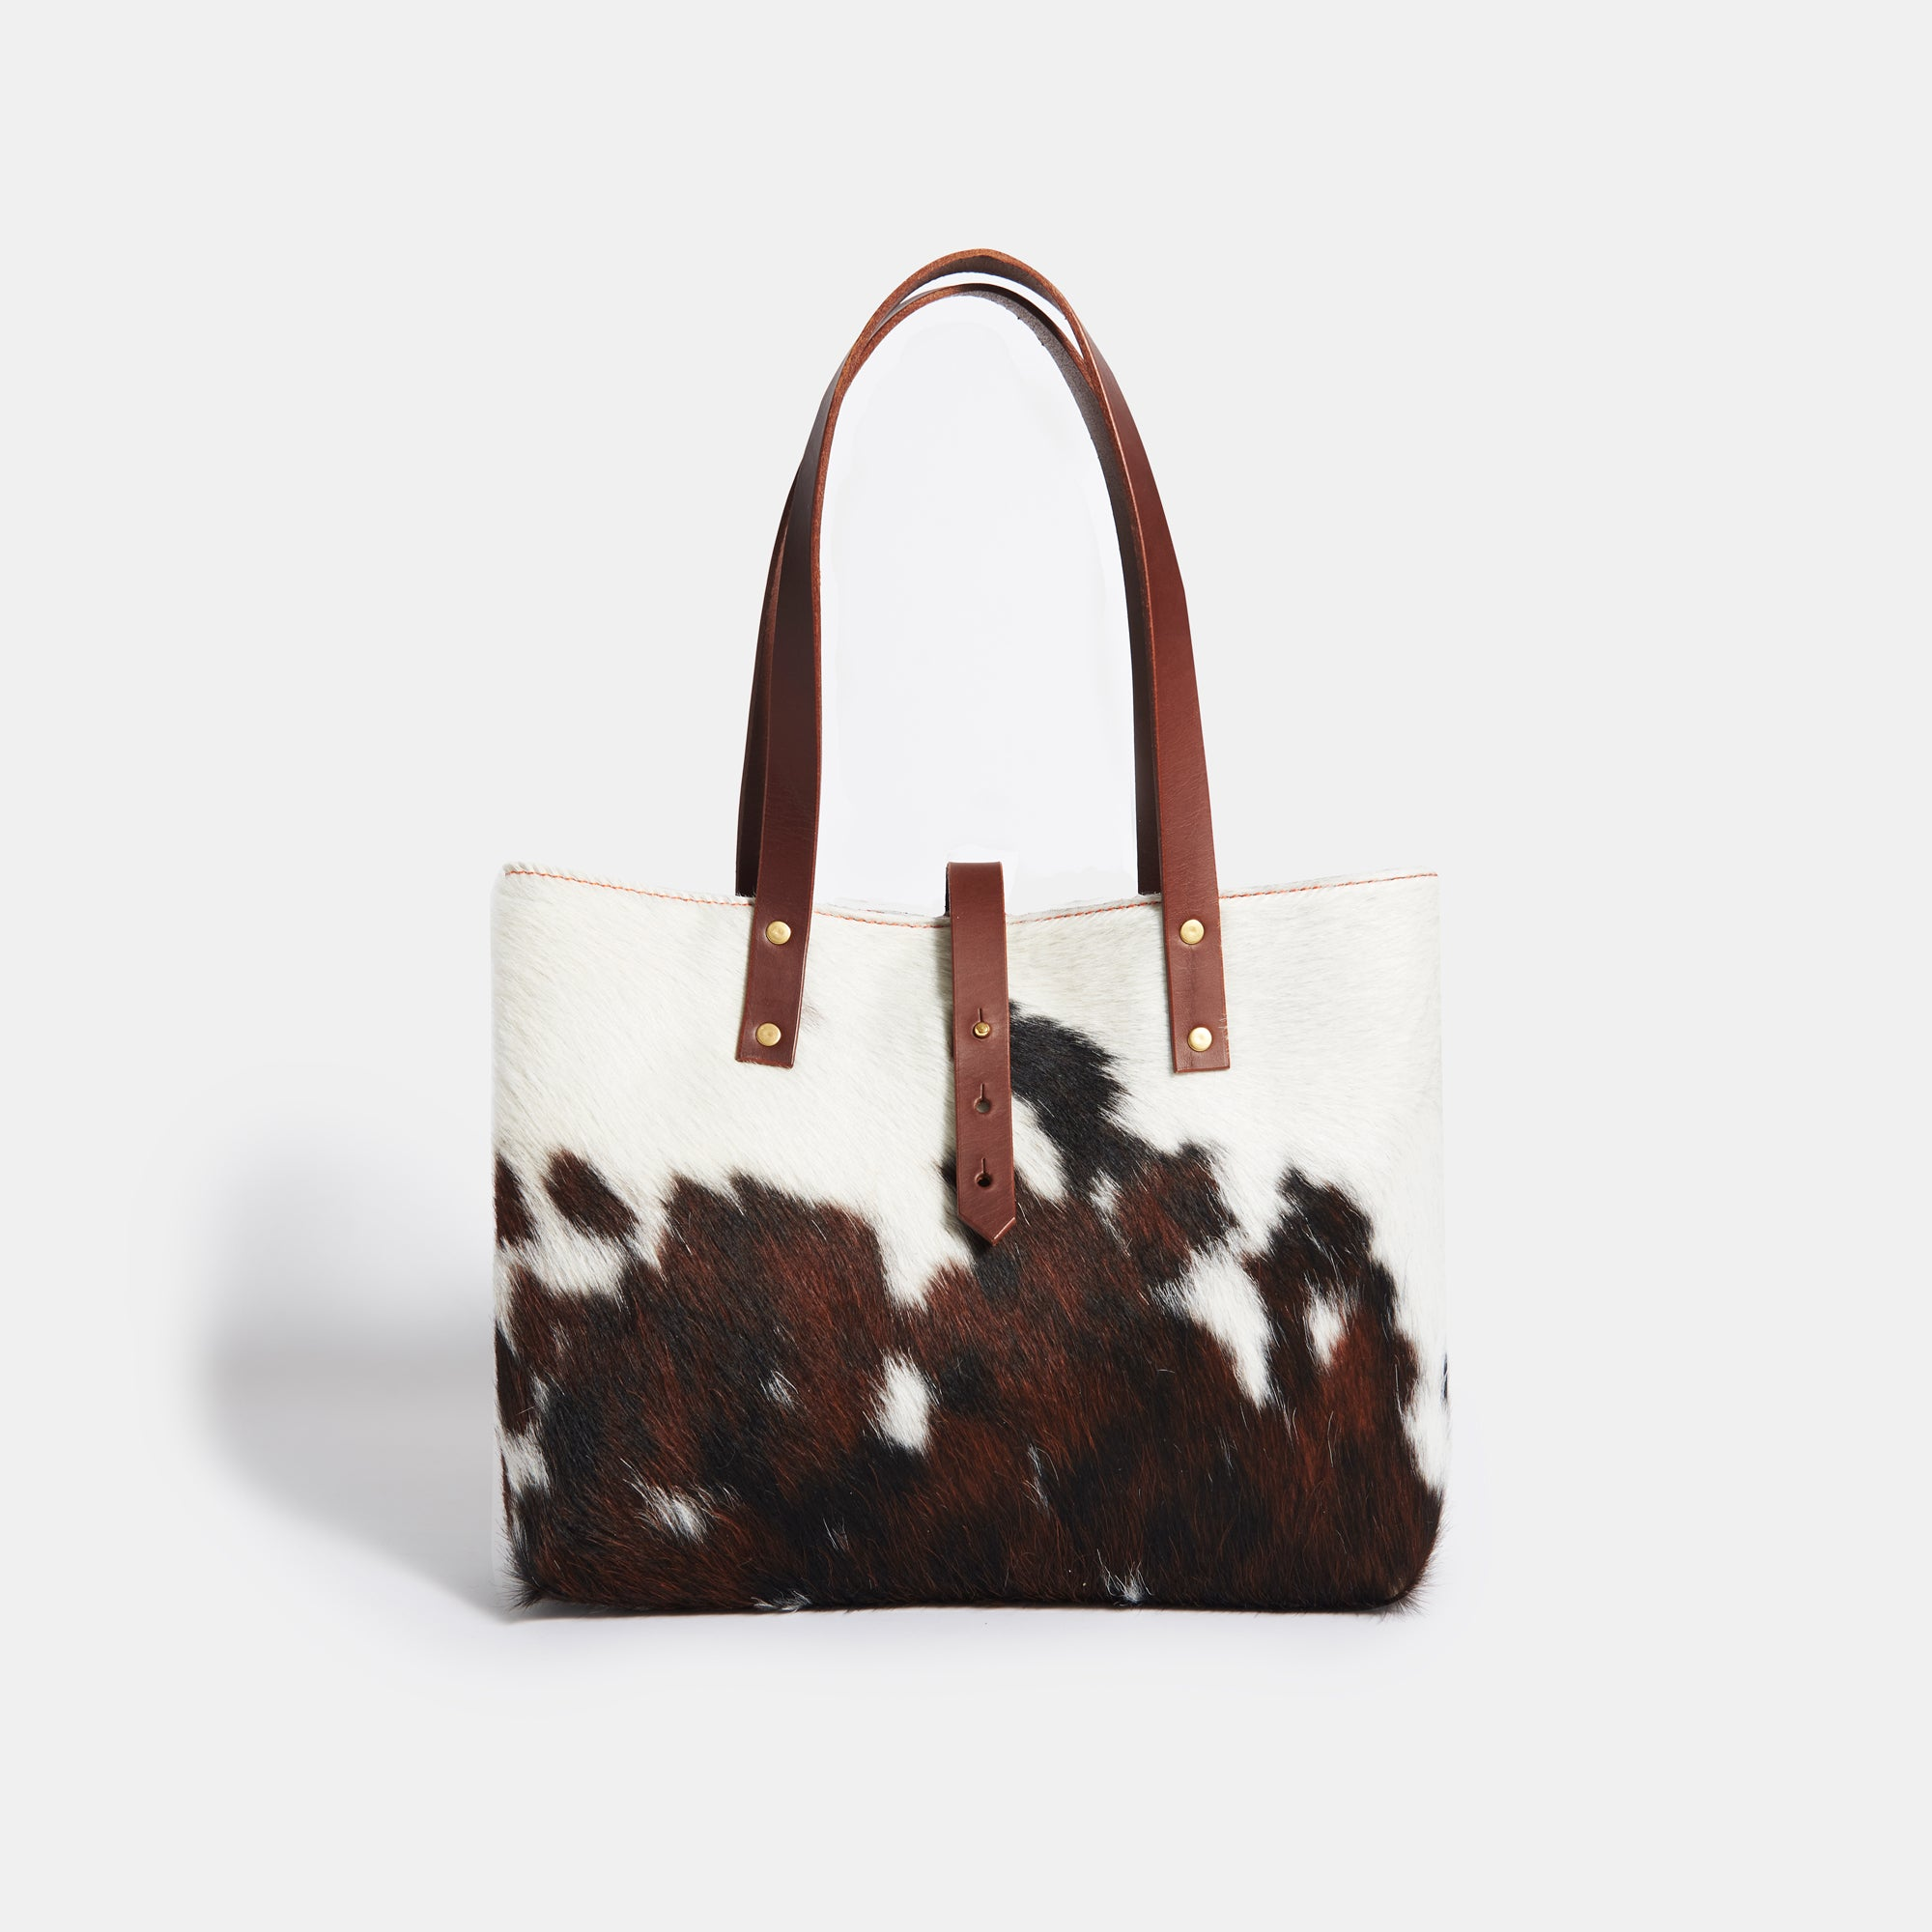 Hair-on Tote Bag - RYAN London